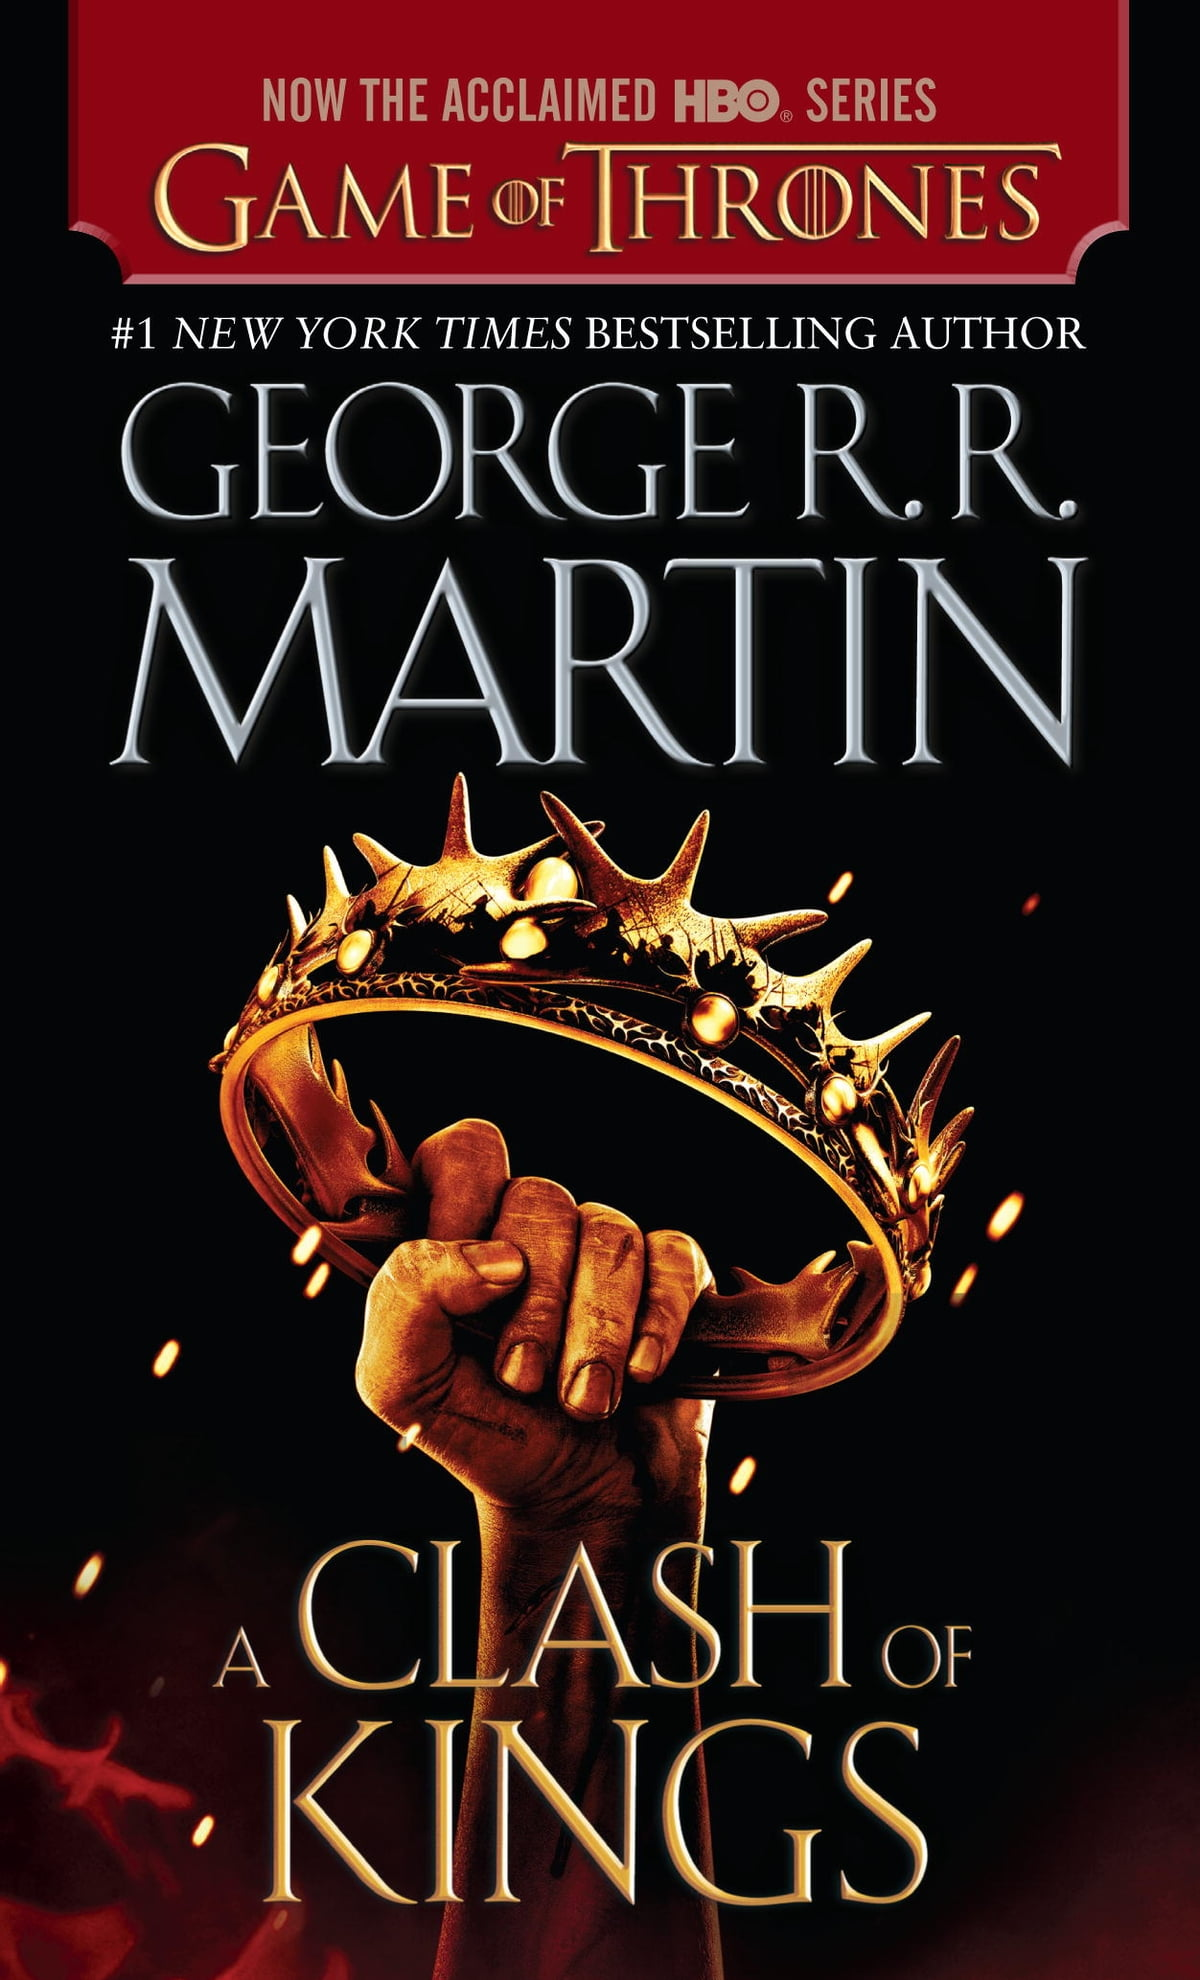 A Clash Of Kings Ebook By George R R Martin 9780553897852